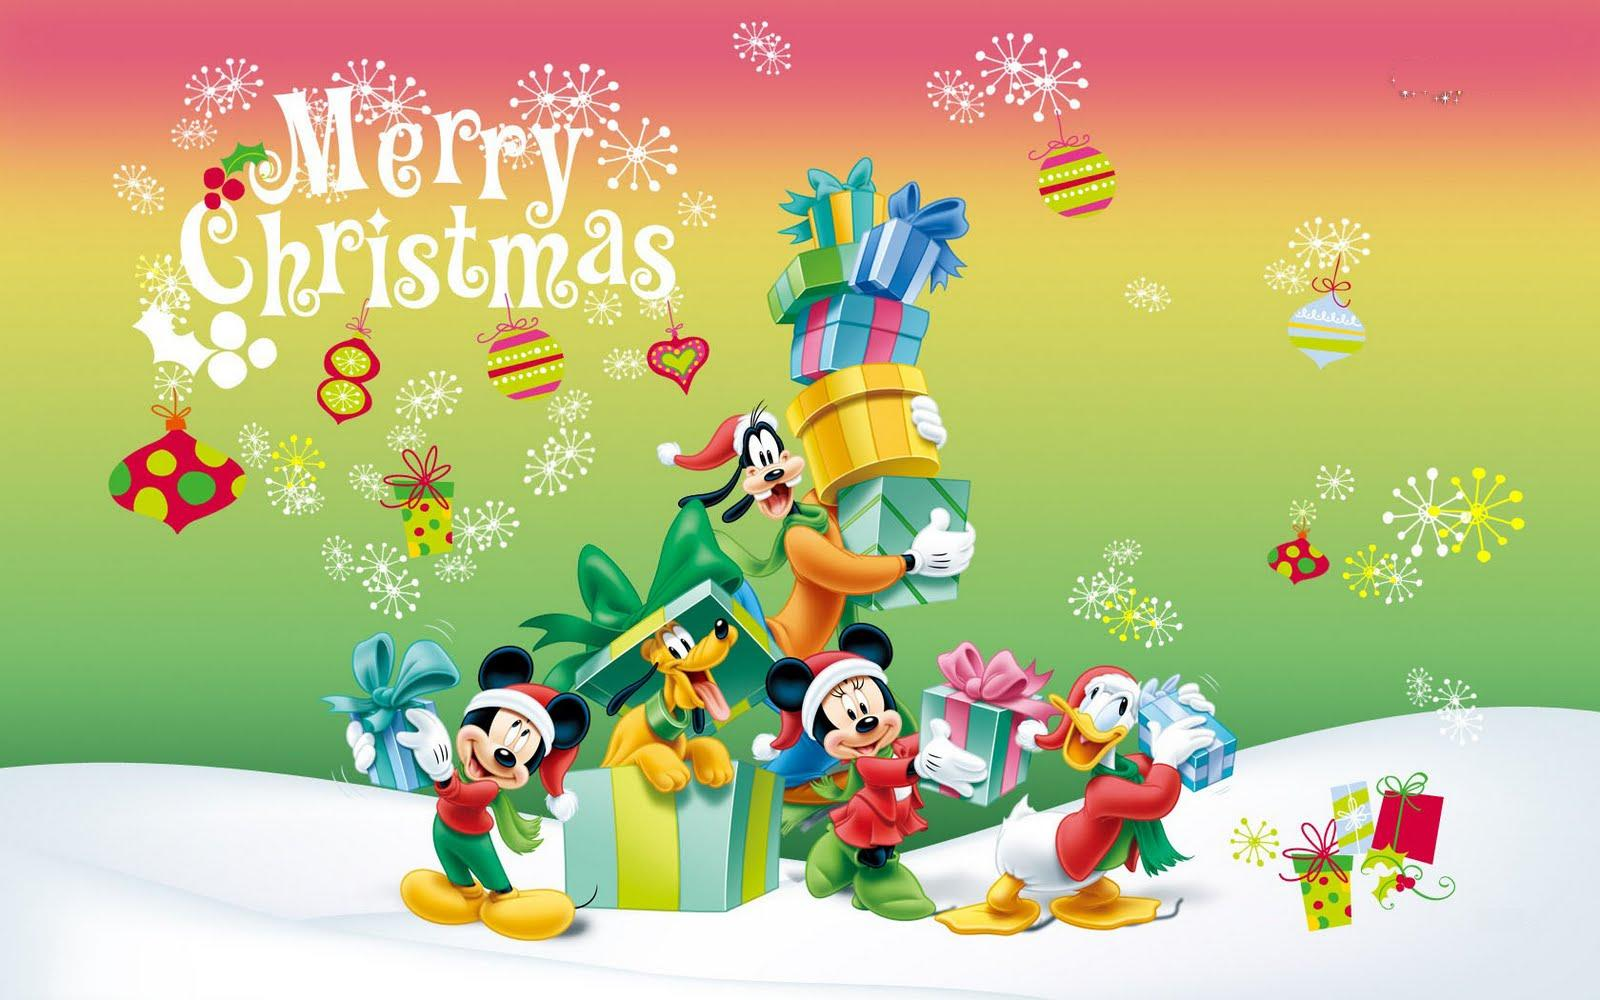 {Free} Merry Christmas Images 2018 - Happy New Years 2018 Images, HD Wallpape...